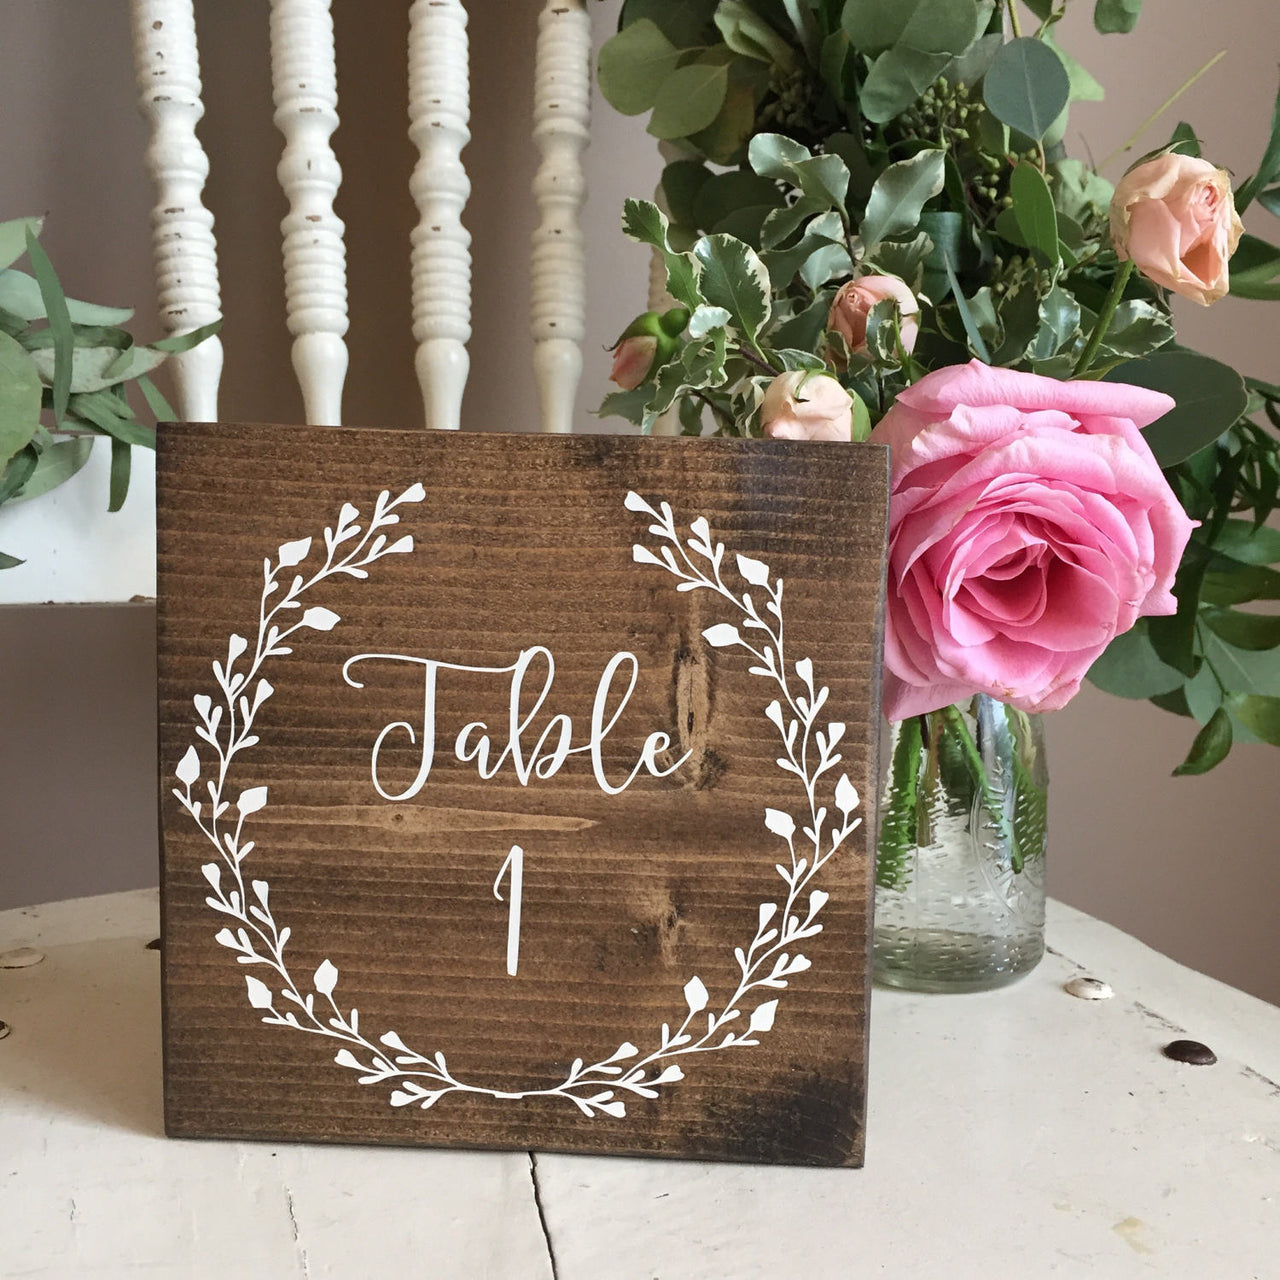 Wedding Table Numbers, Wooden Table Numbers, Handpainted Table Numbers, Woodland Table Number, Boho Wedding Decor, Rustic Table Numbers